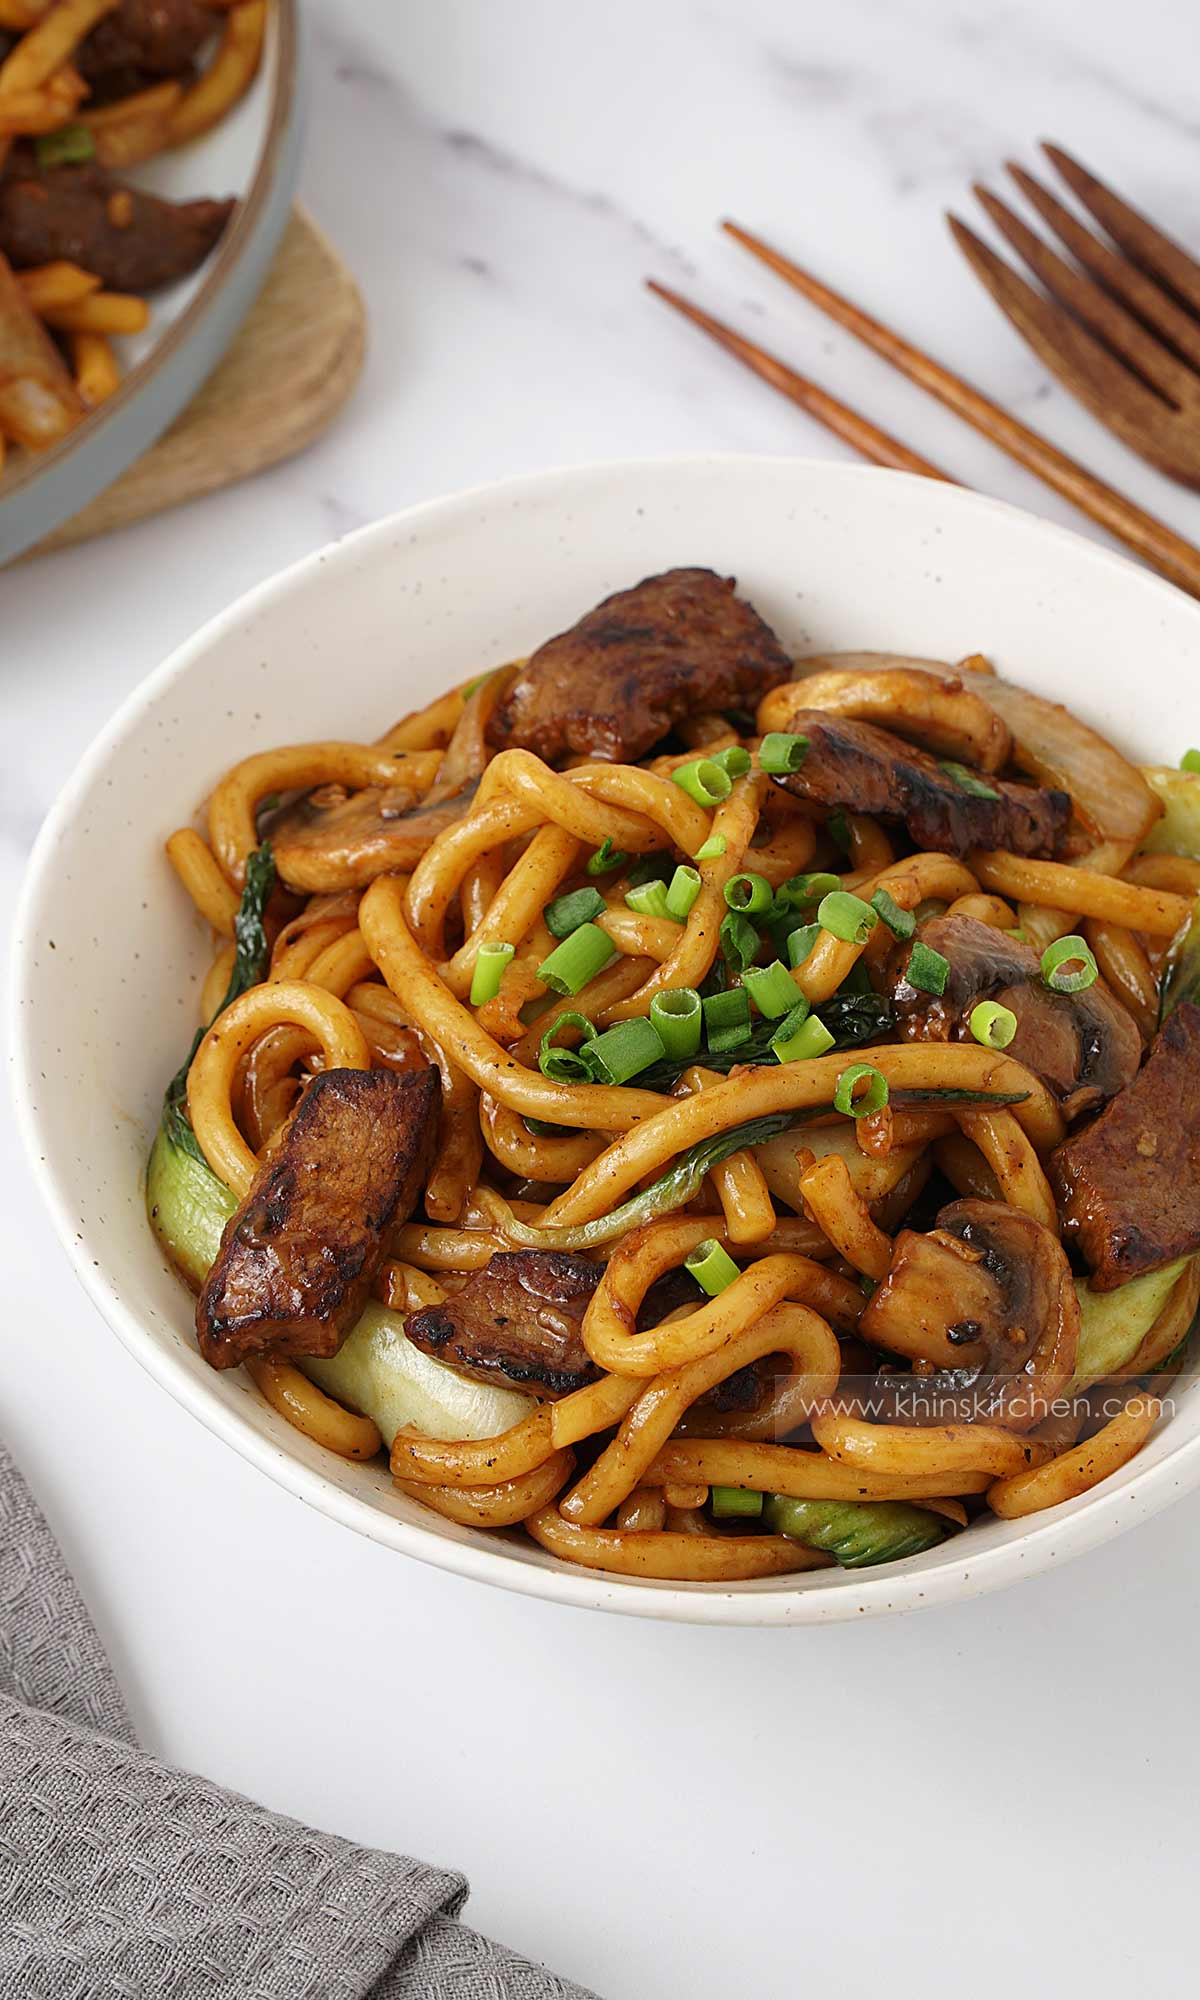 A white bowl containing stir fry udon noodles, with beef slices and vegetables. Topped with chopped spring onions.